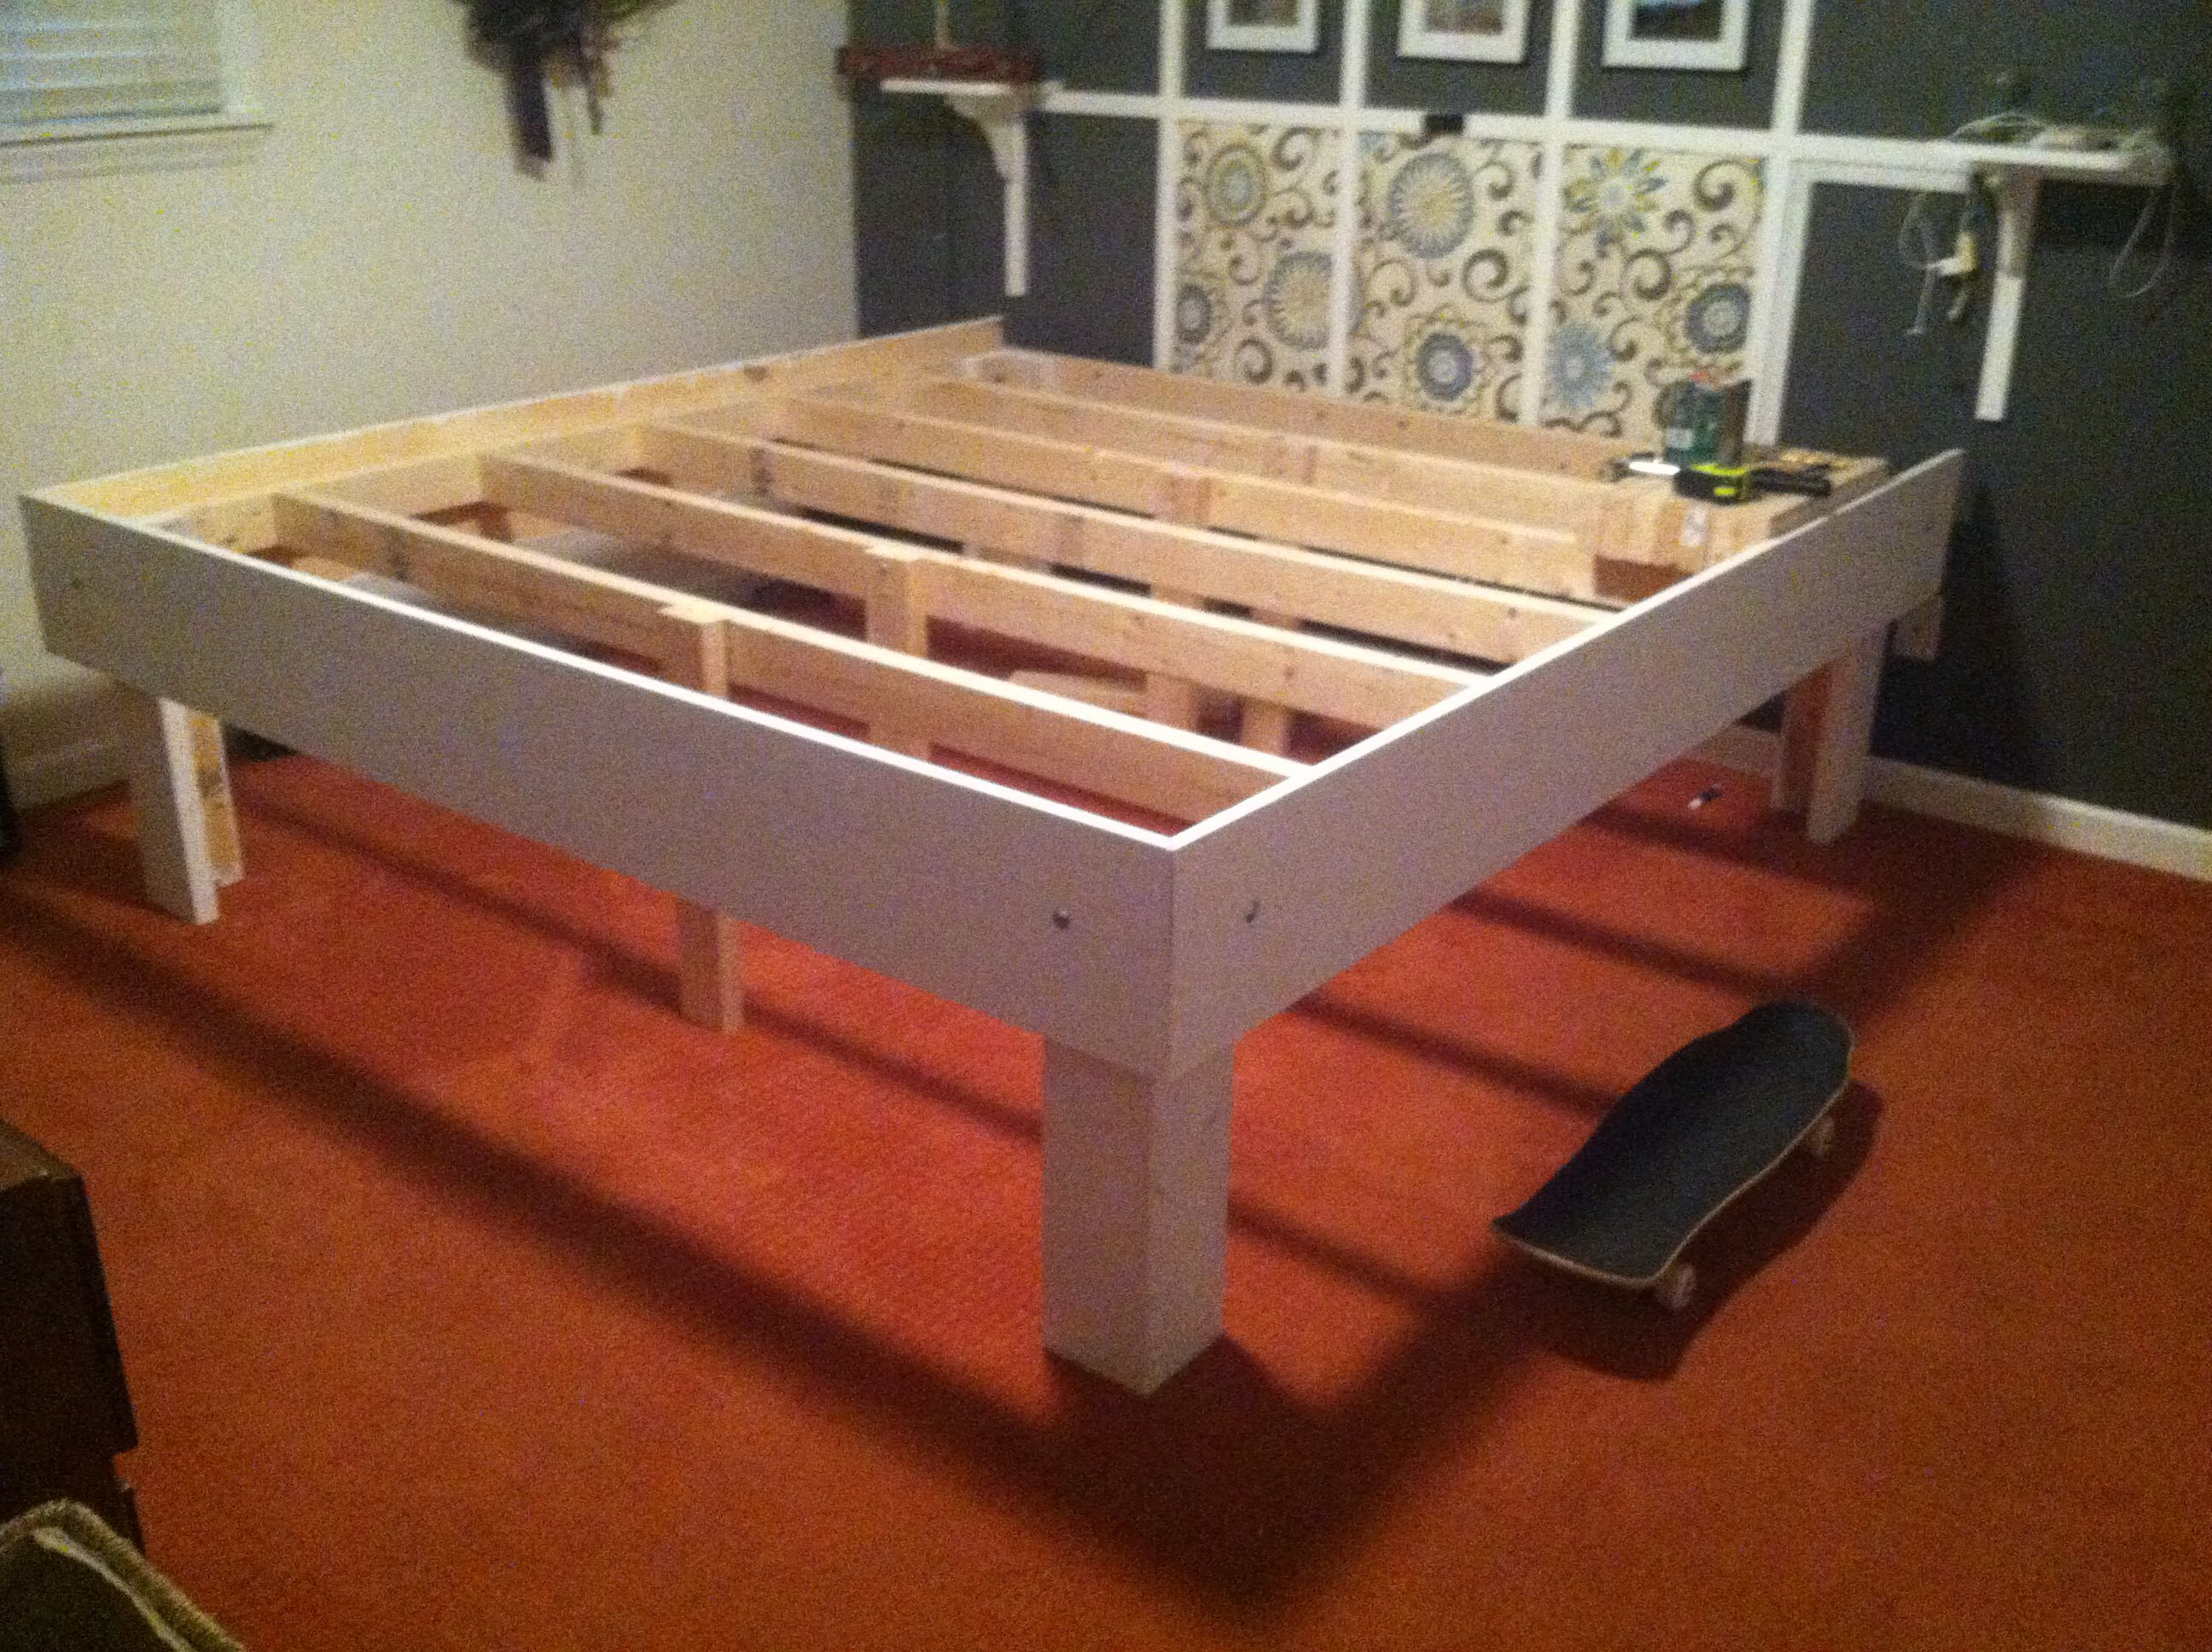 Diy Easy King Size Platform Bed With 17 Of Storage Space Underneath